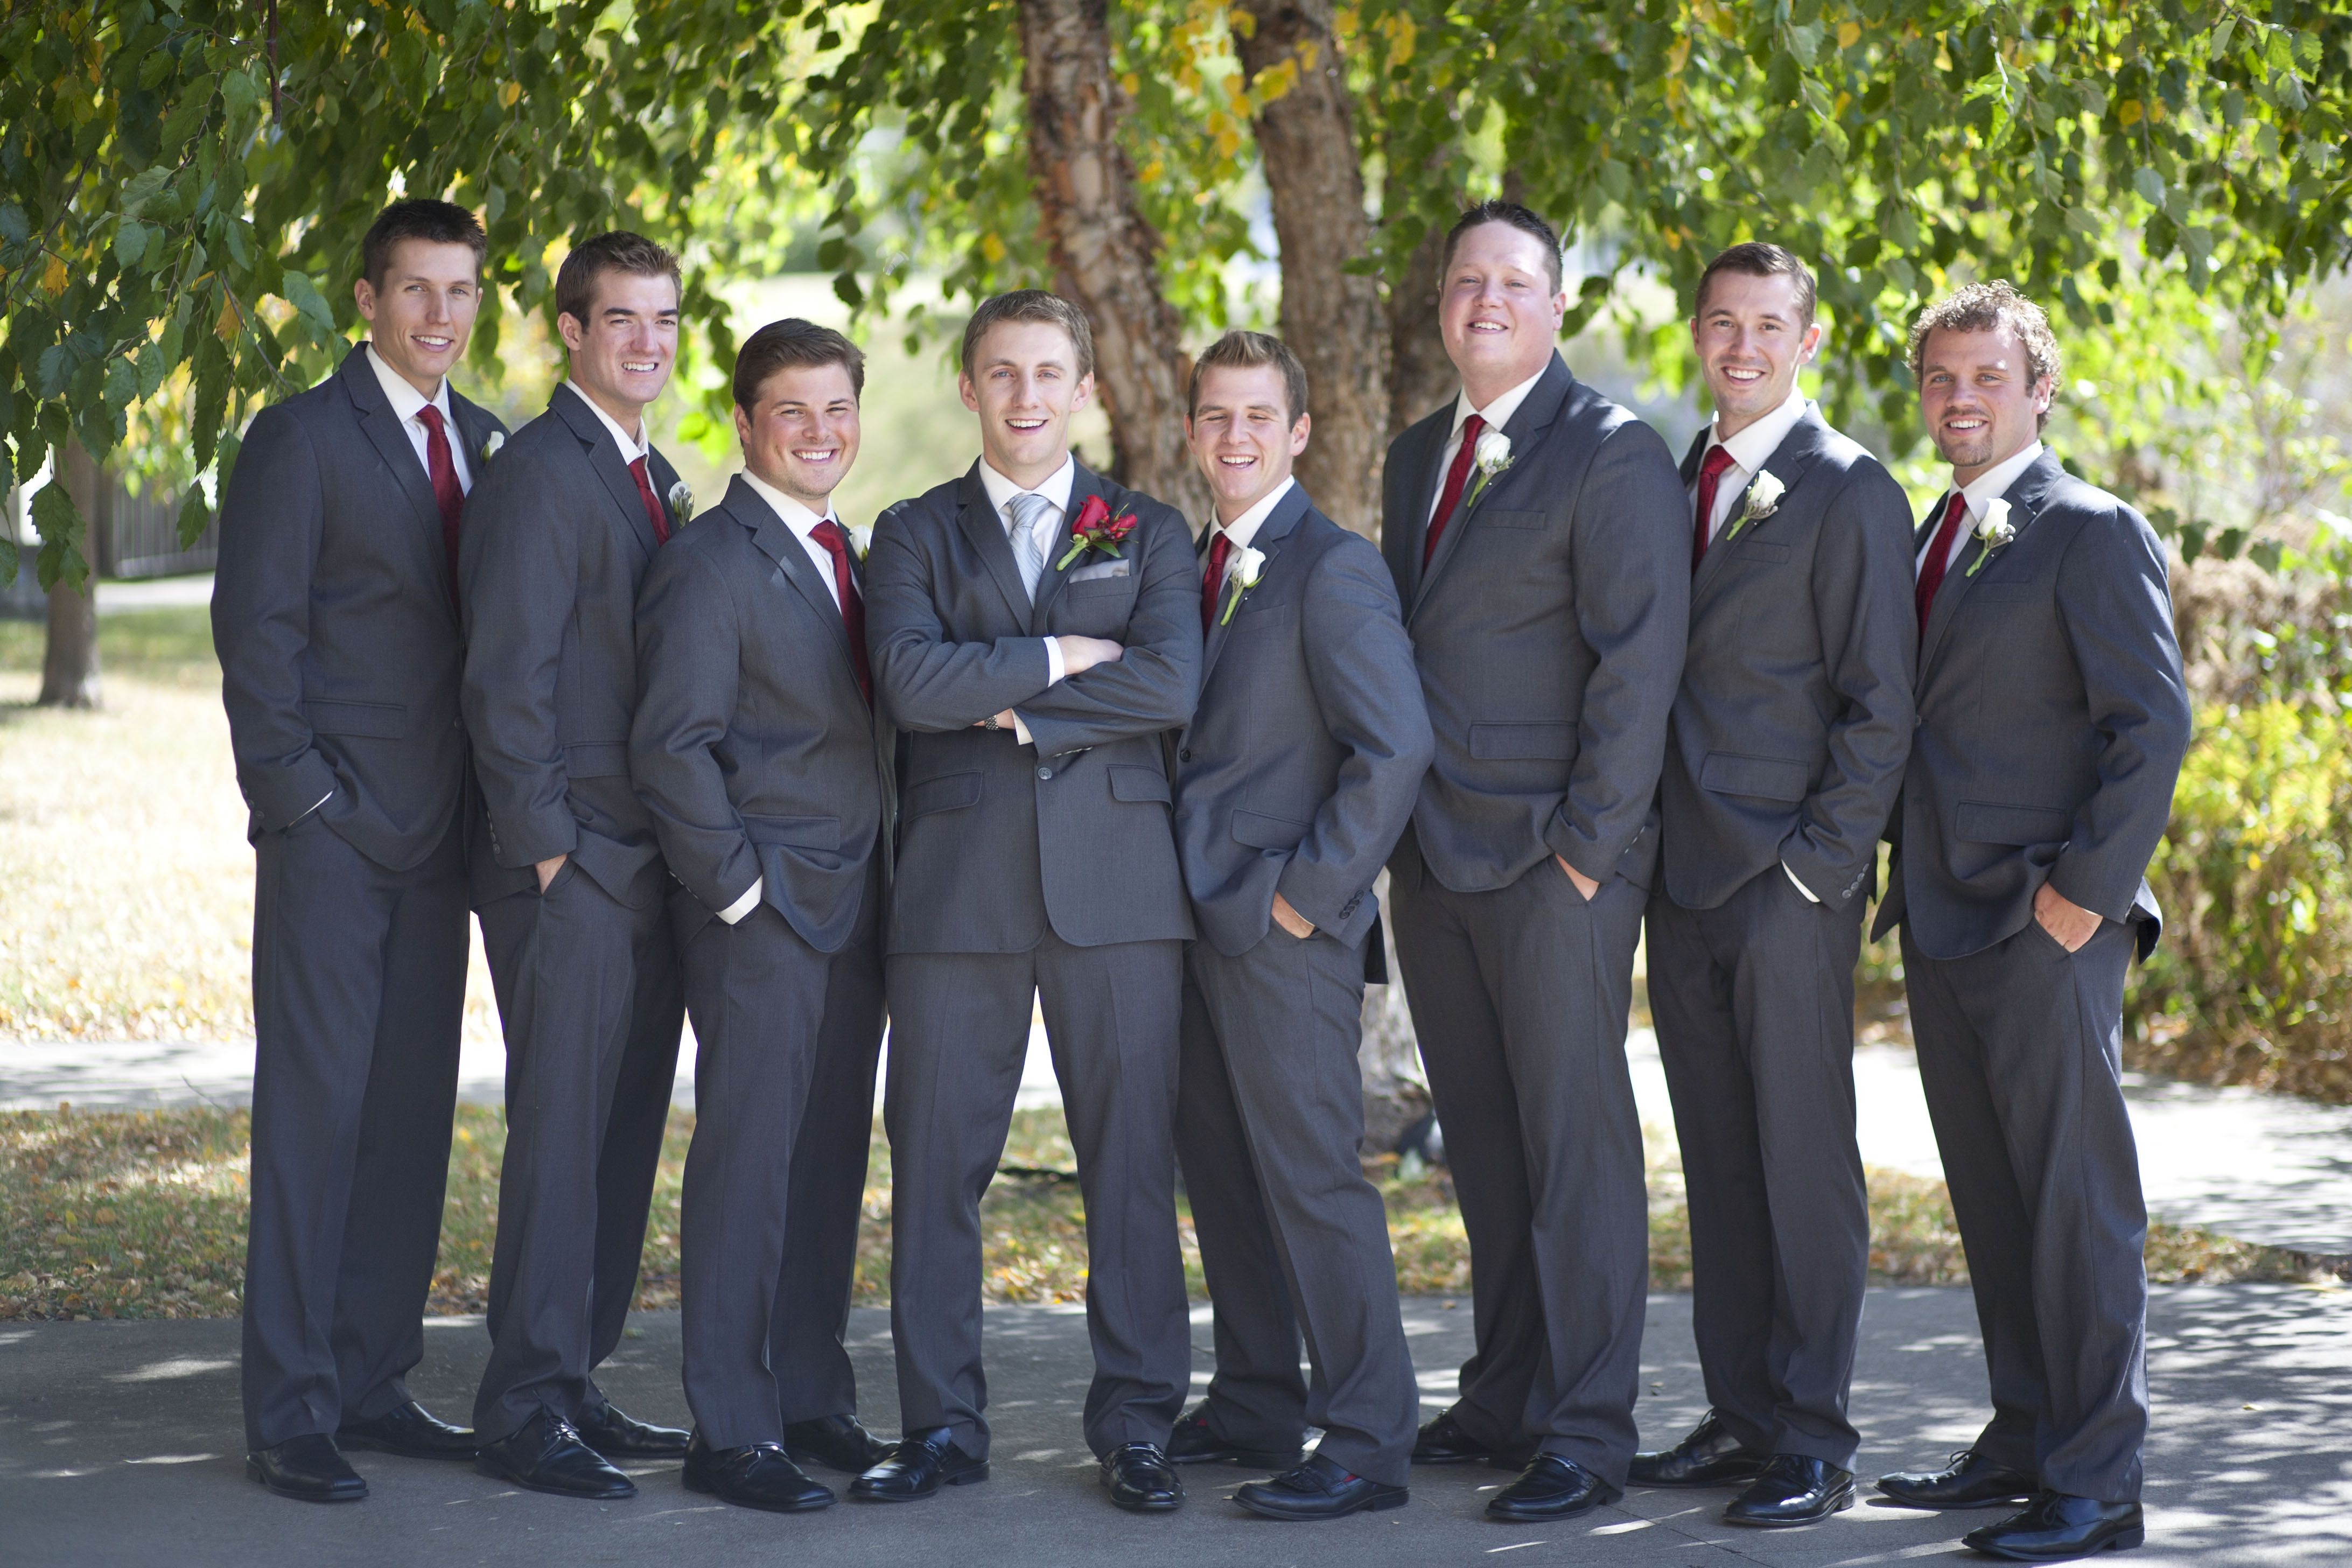 Guy\'s Charcoal Gray Suits | Mueller Wedding | Pinterest | Charcoal ...